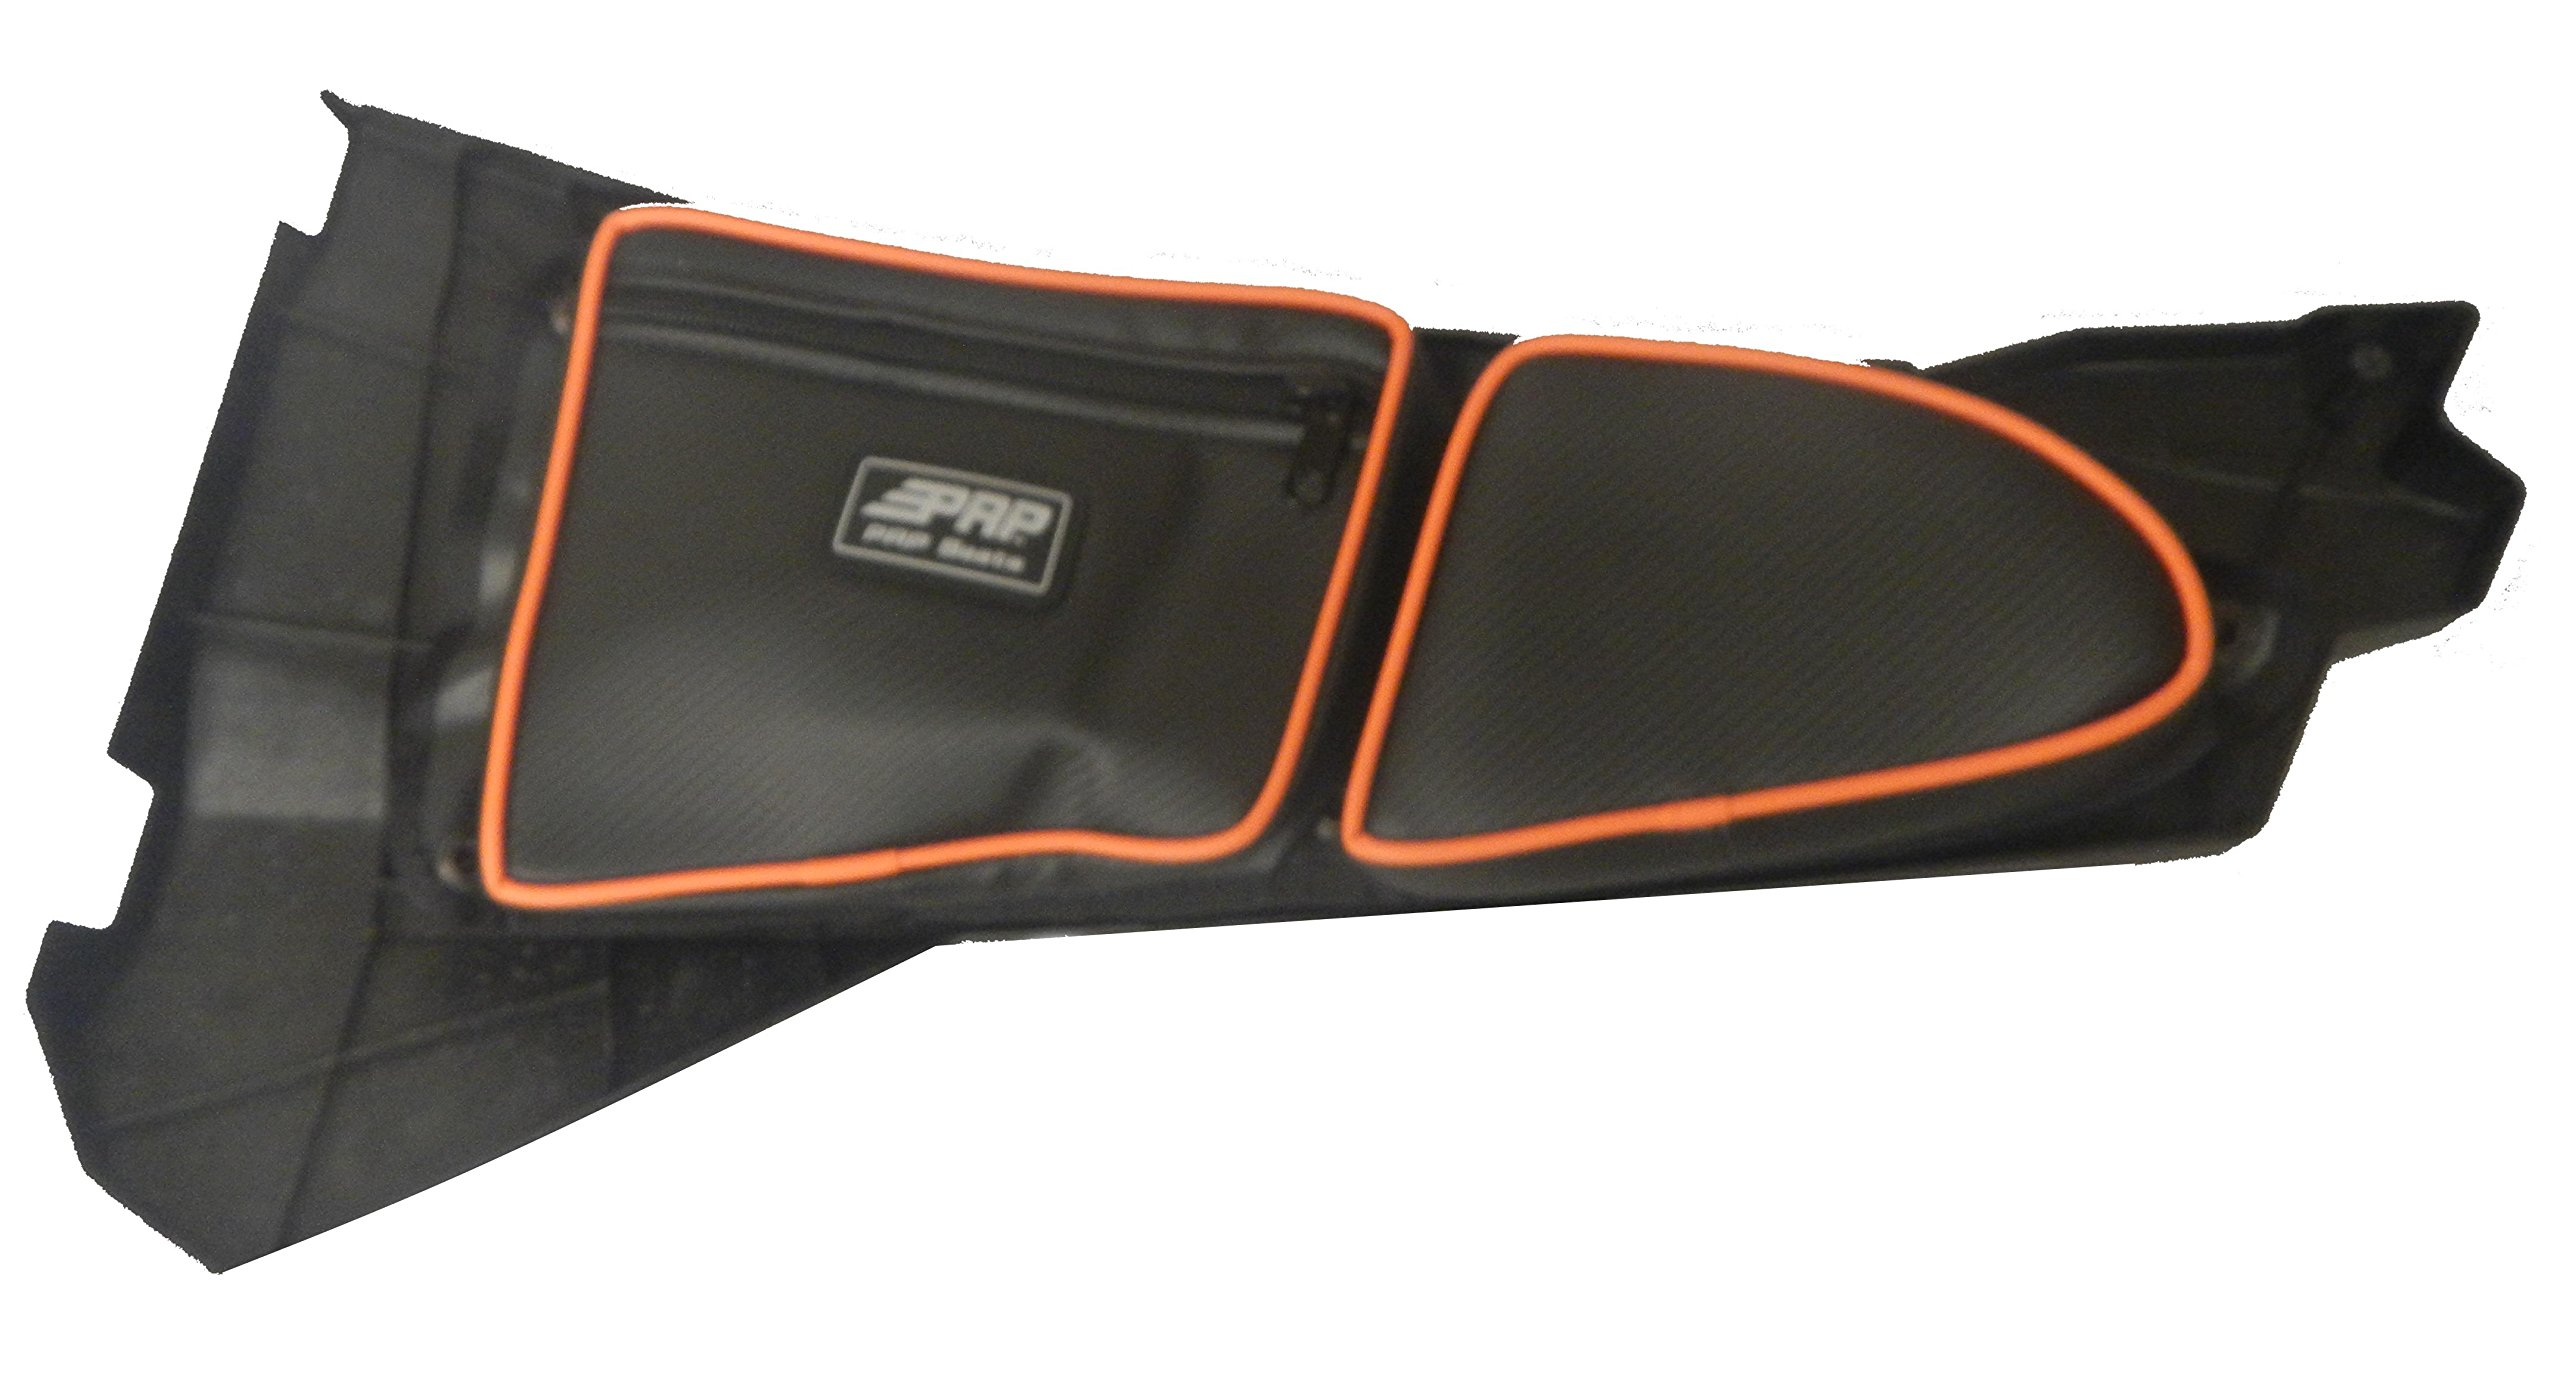 PRP Door Bags SET 2 SEATER FRONT RZR 1000 XP1K 2015+ RZR900S 900XC ORANGE PIPING #E36-37215 by Adrenaline Cycles (Image #1)